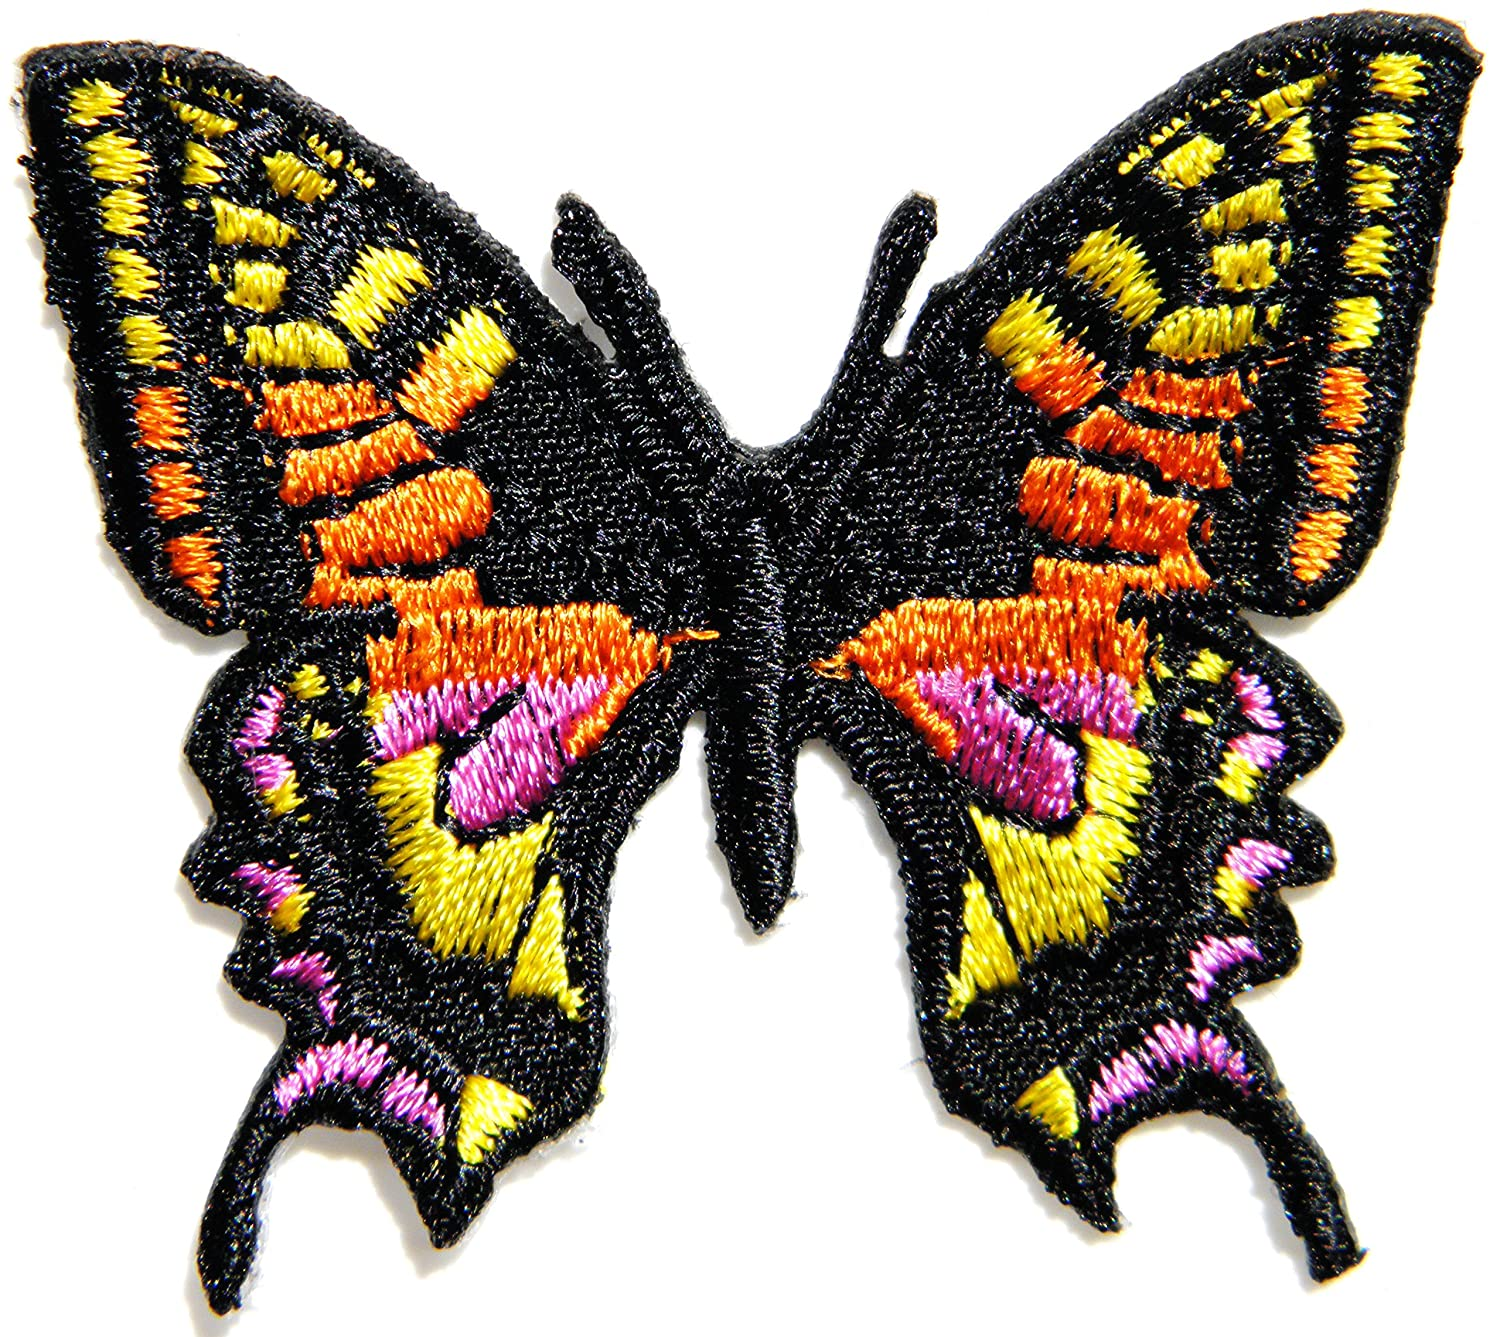 Amazon.com: Butterfly Wild Animal Punk Rock Hippie Retro Peace Tatoo Lady Rider Biker Tatoo Kid Jacket T-shirt Patch Sew Iron on Embroidered Applique Sign ...